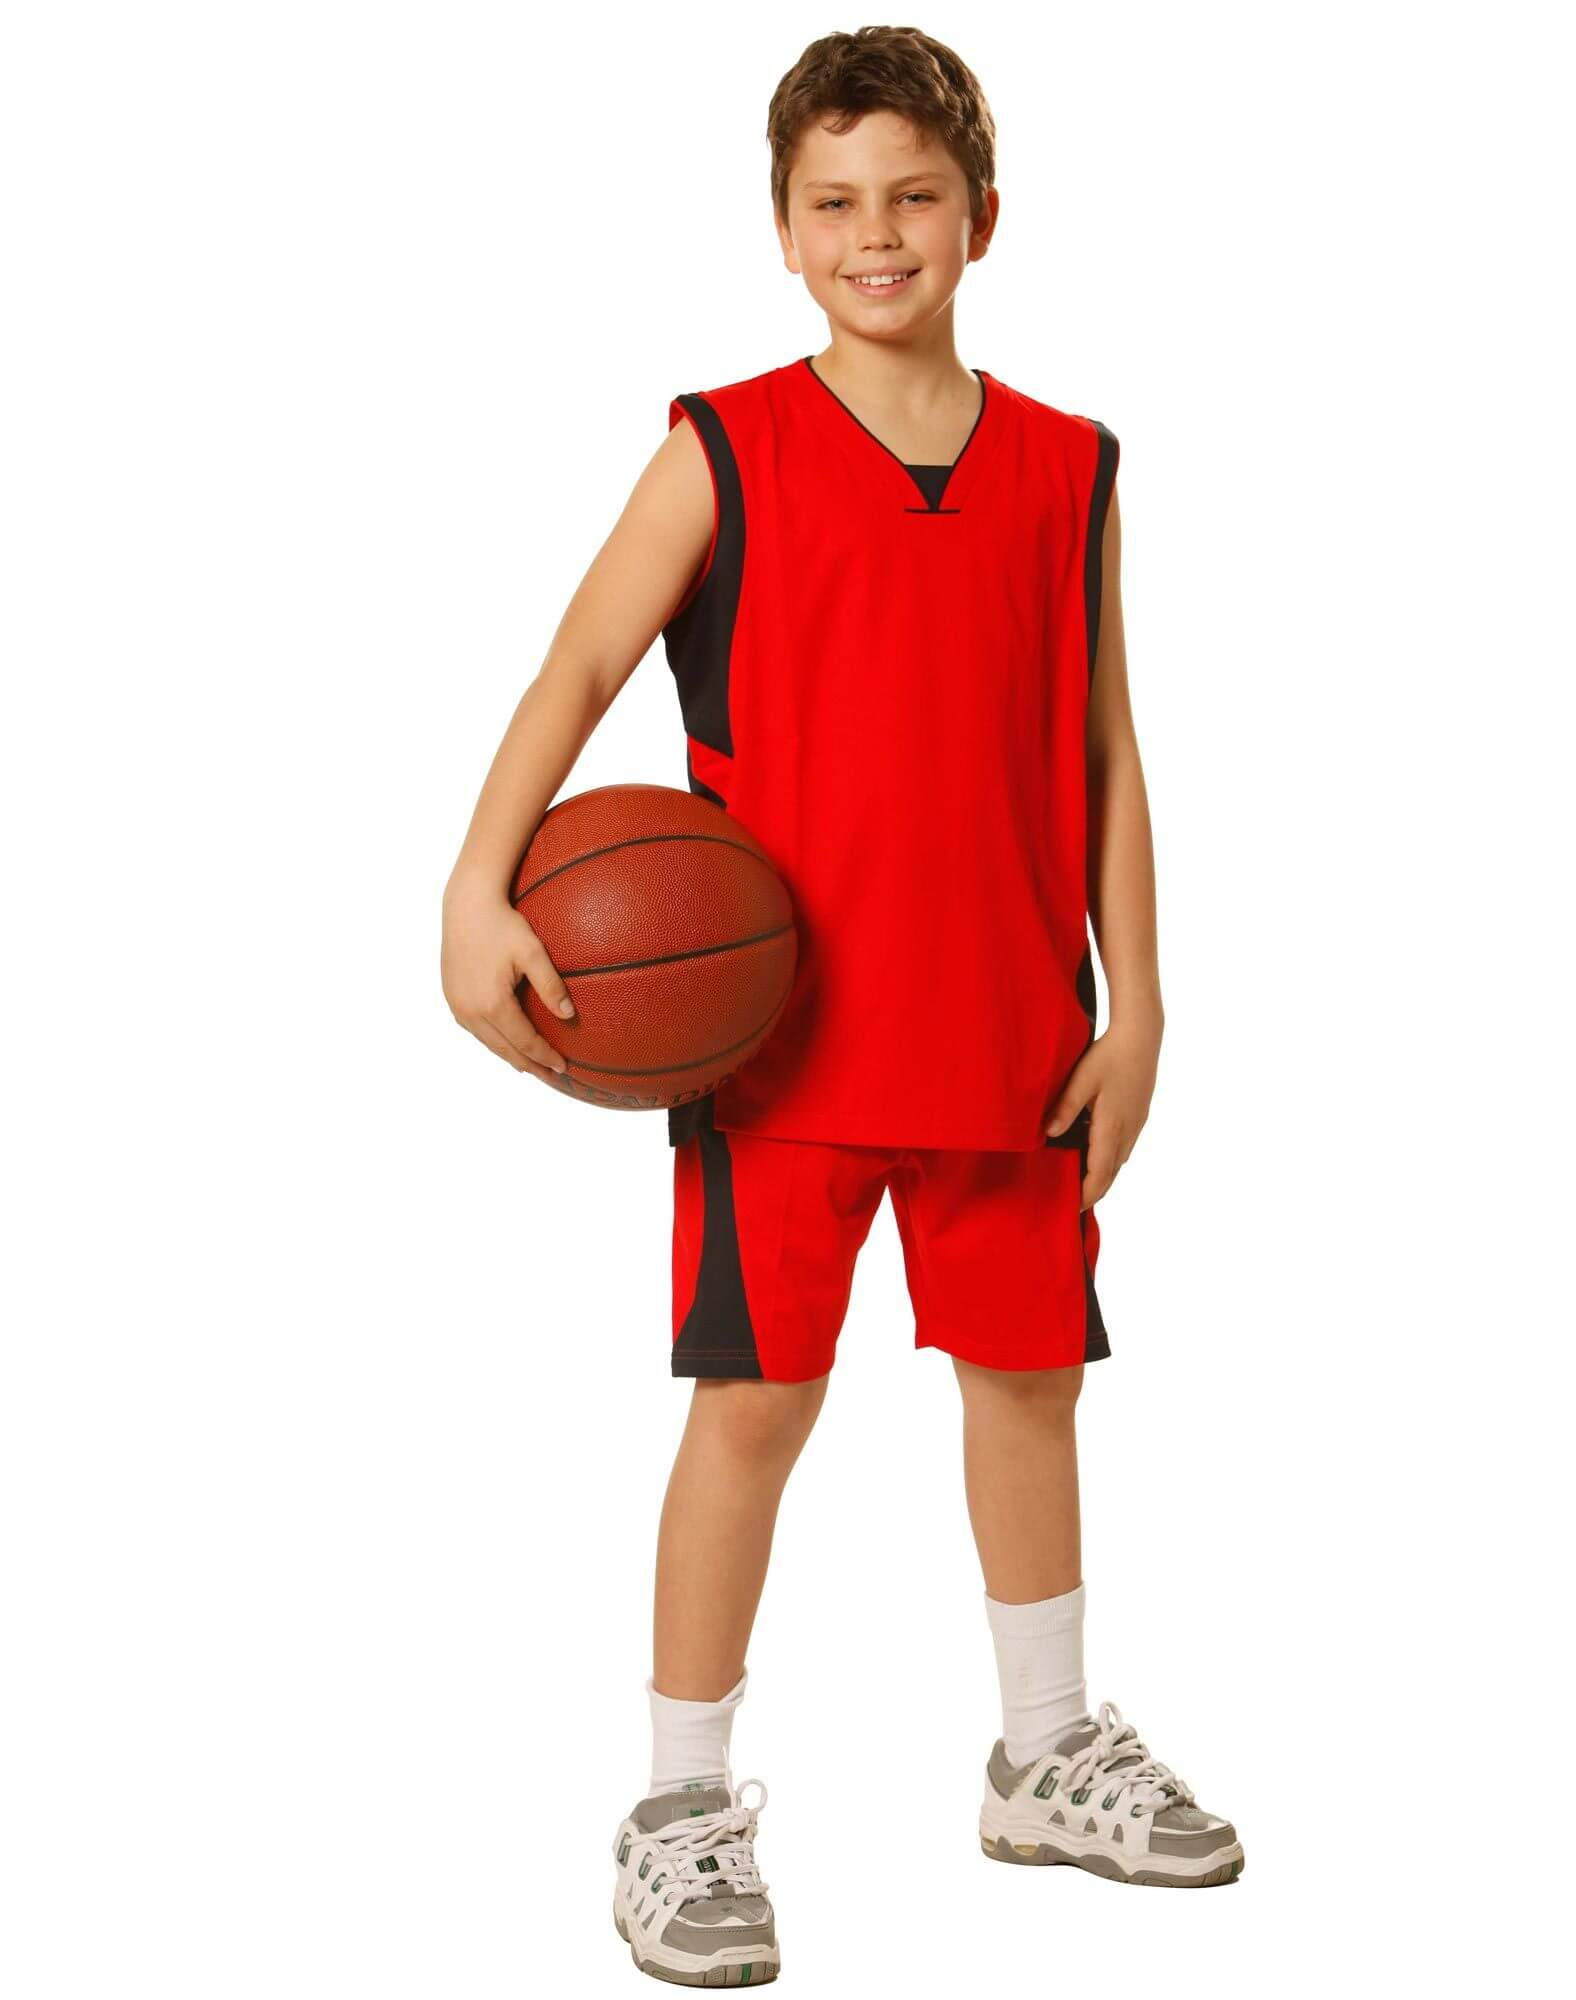 Kids Basketball Jerseys Manufacturers in Saharanpur